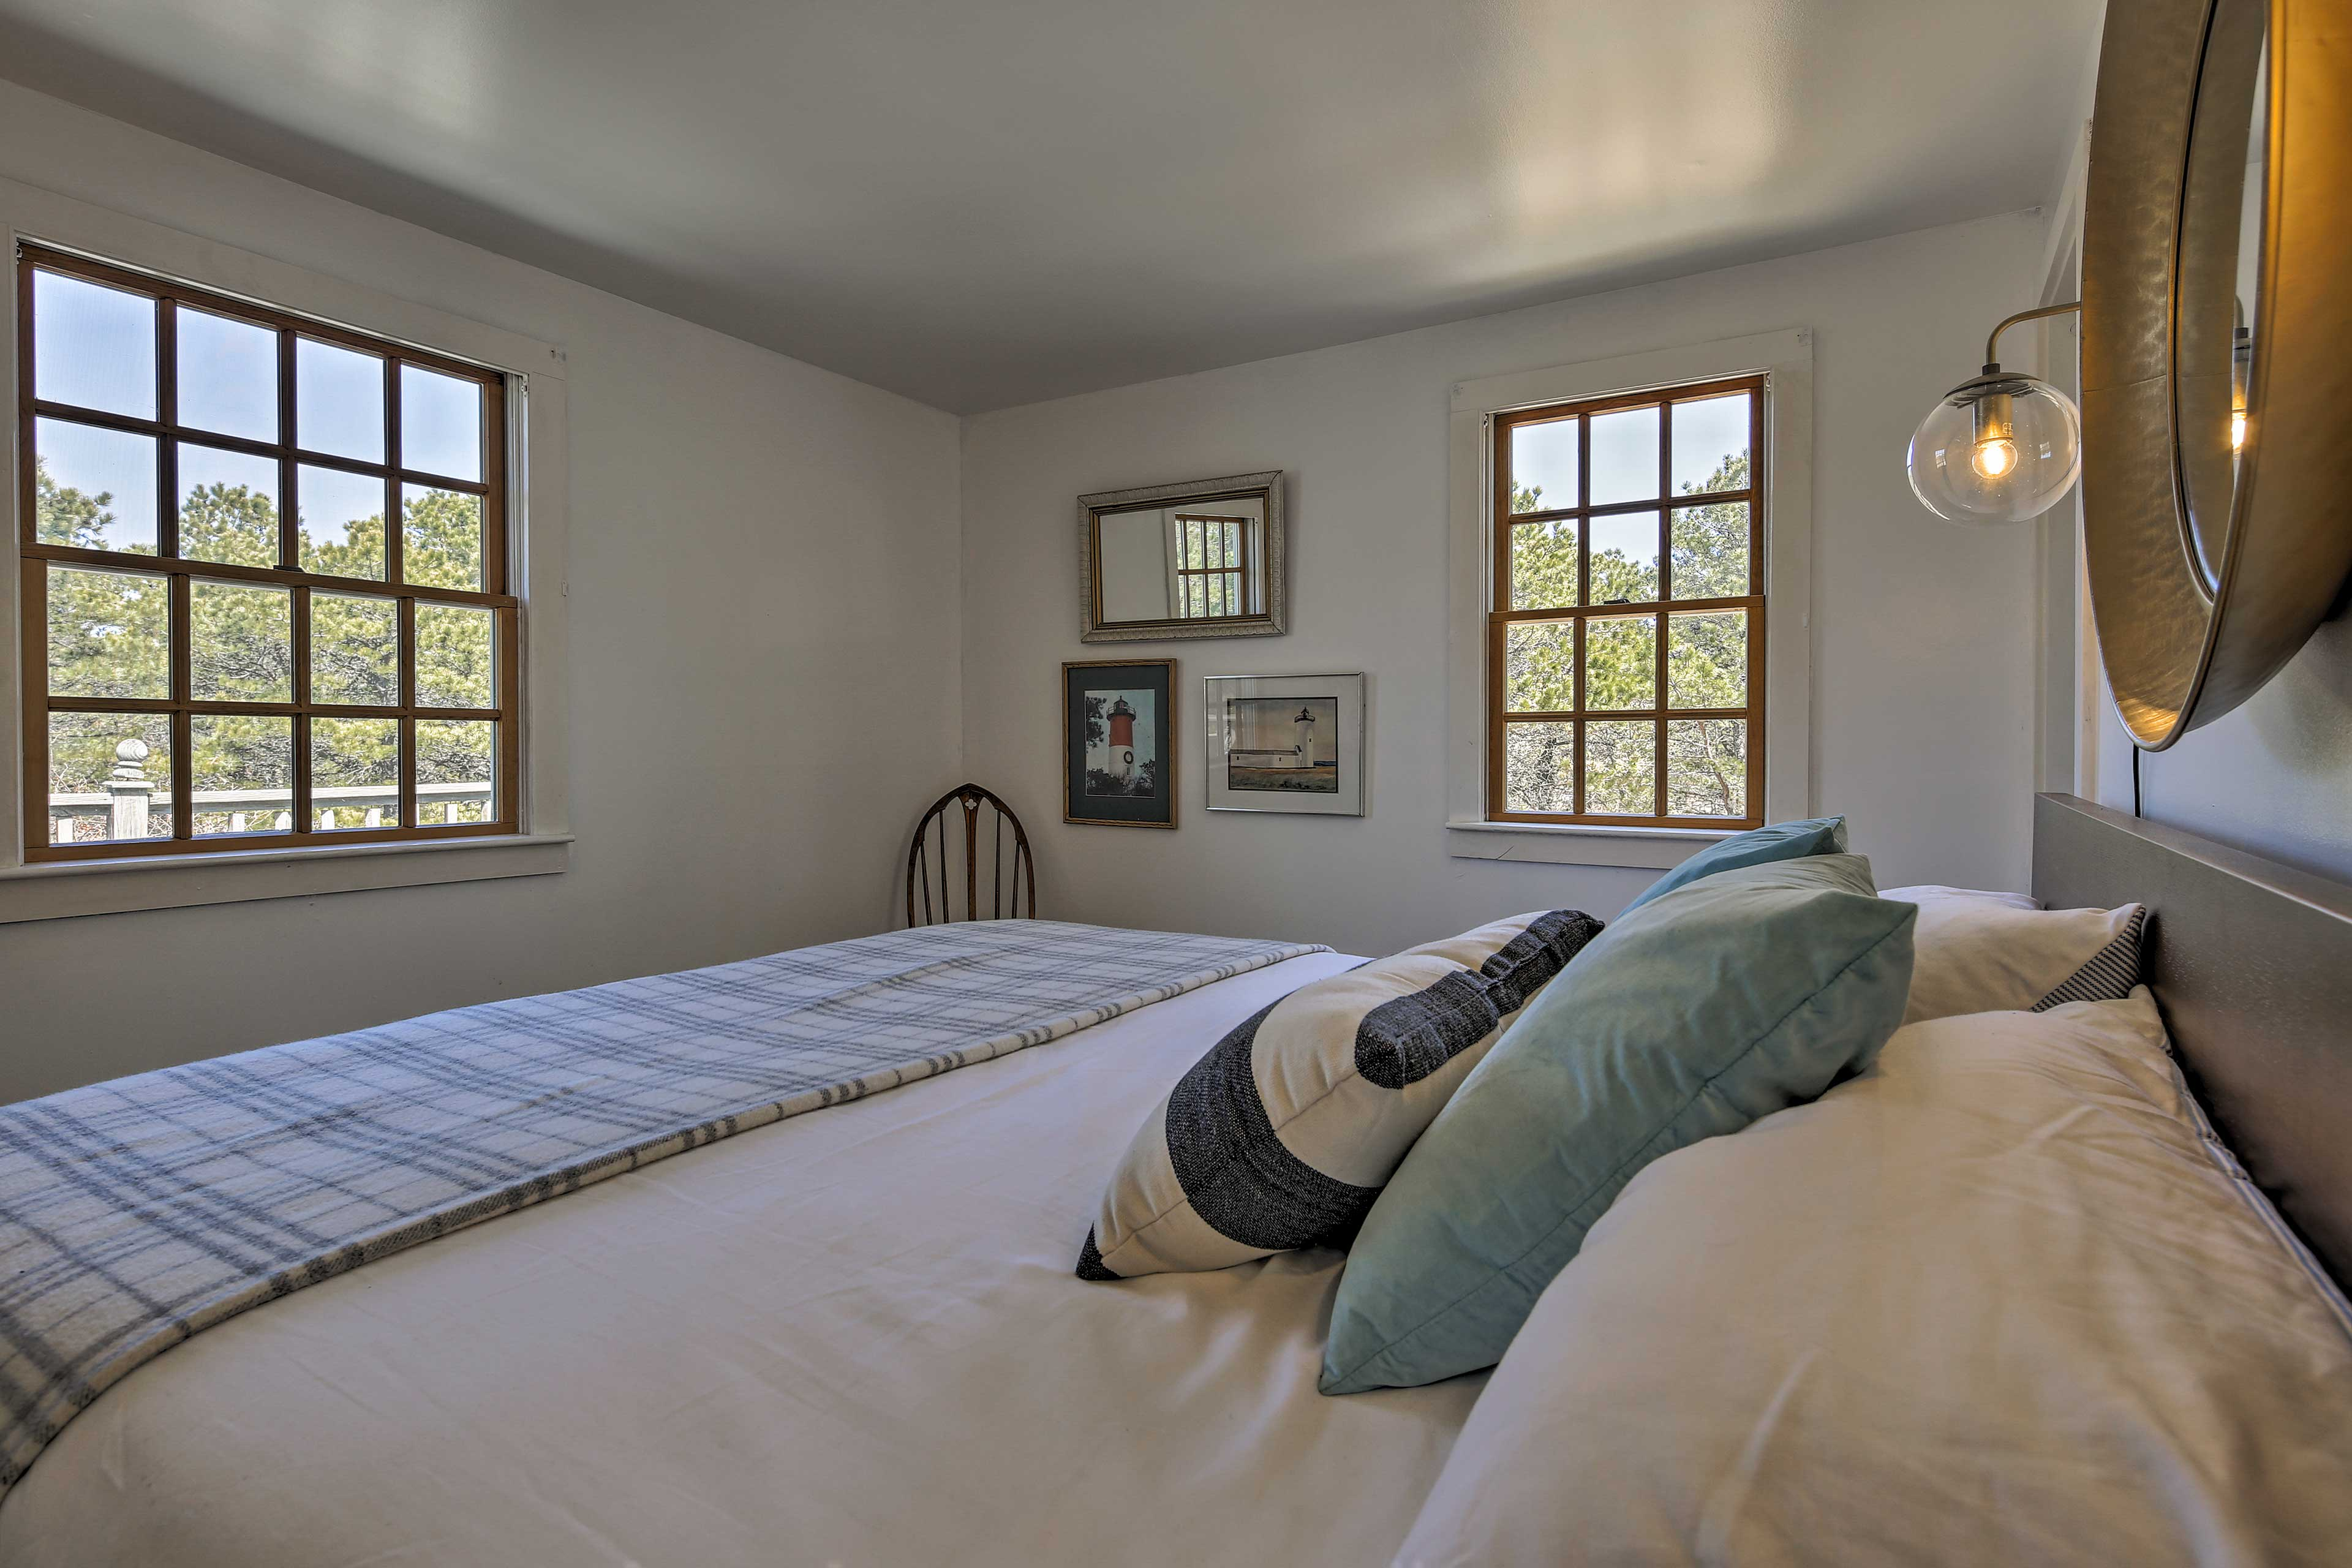 The master bedroom sleeps 2 travelers in a king-sized bed.